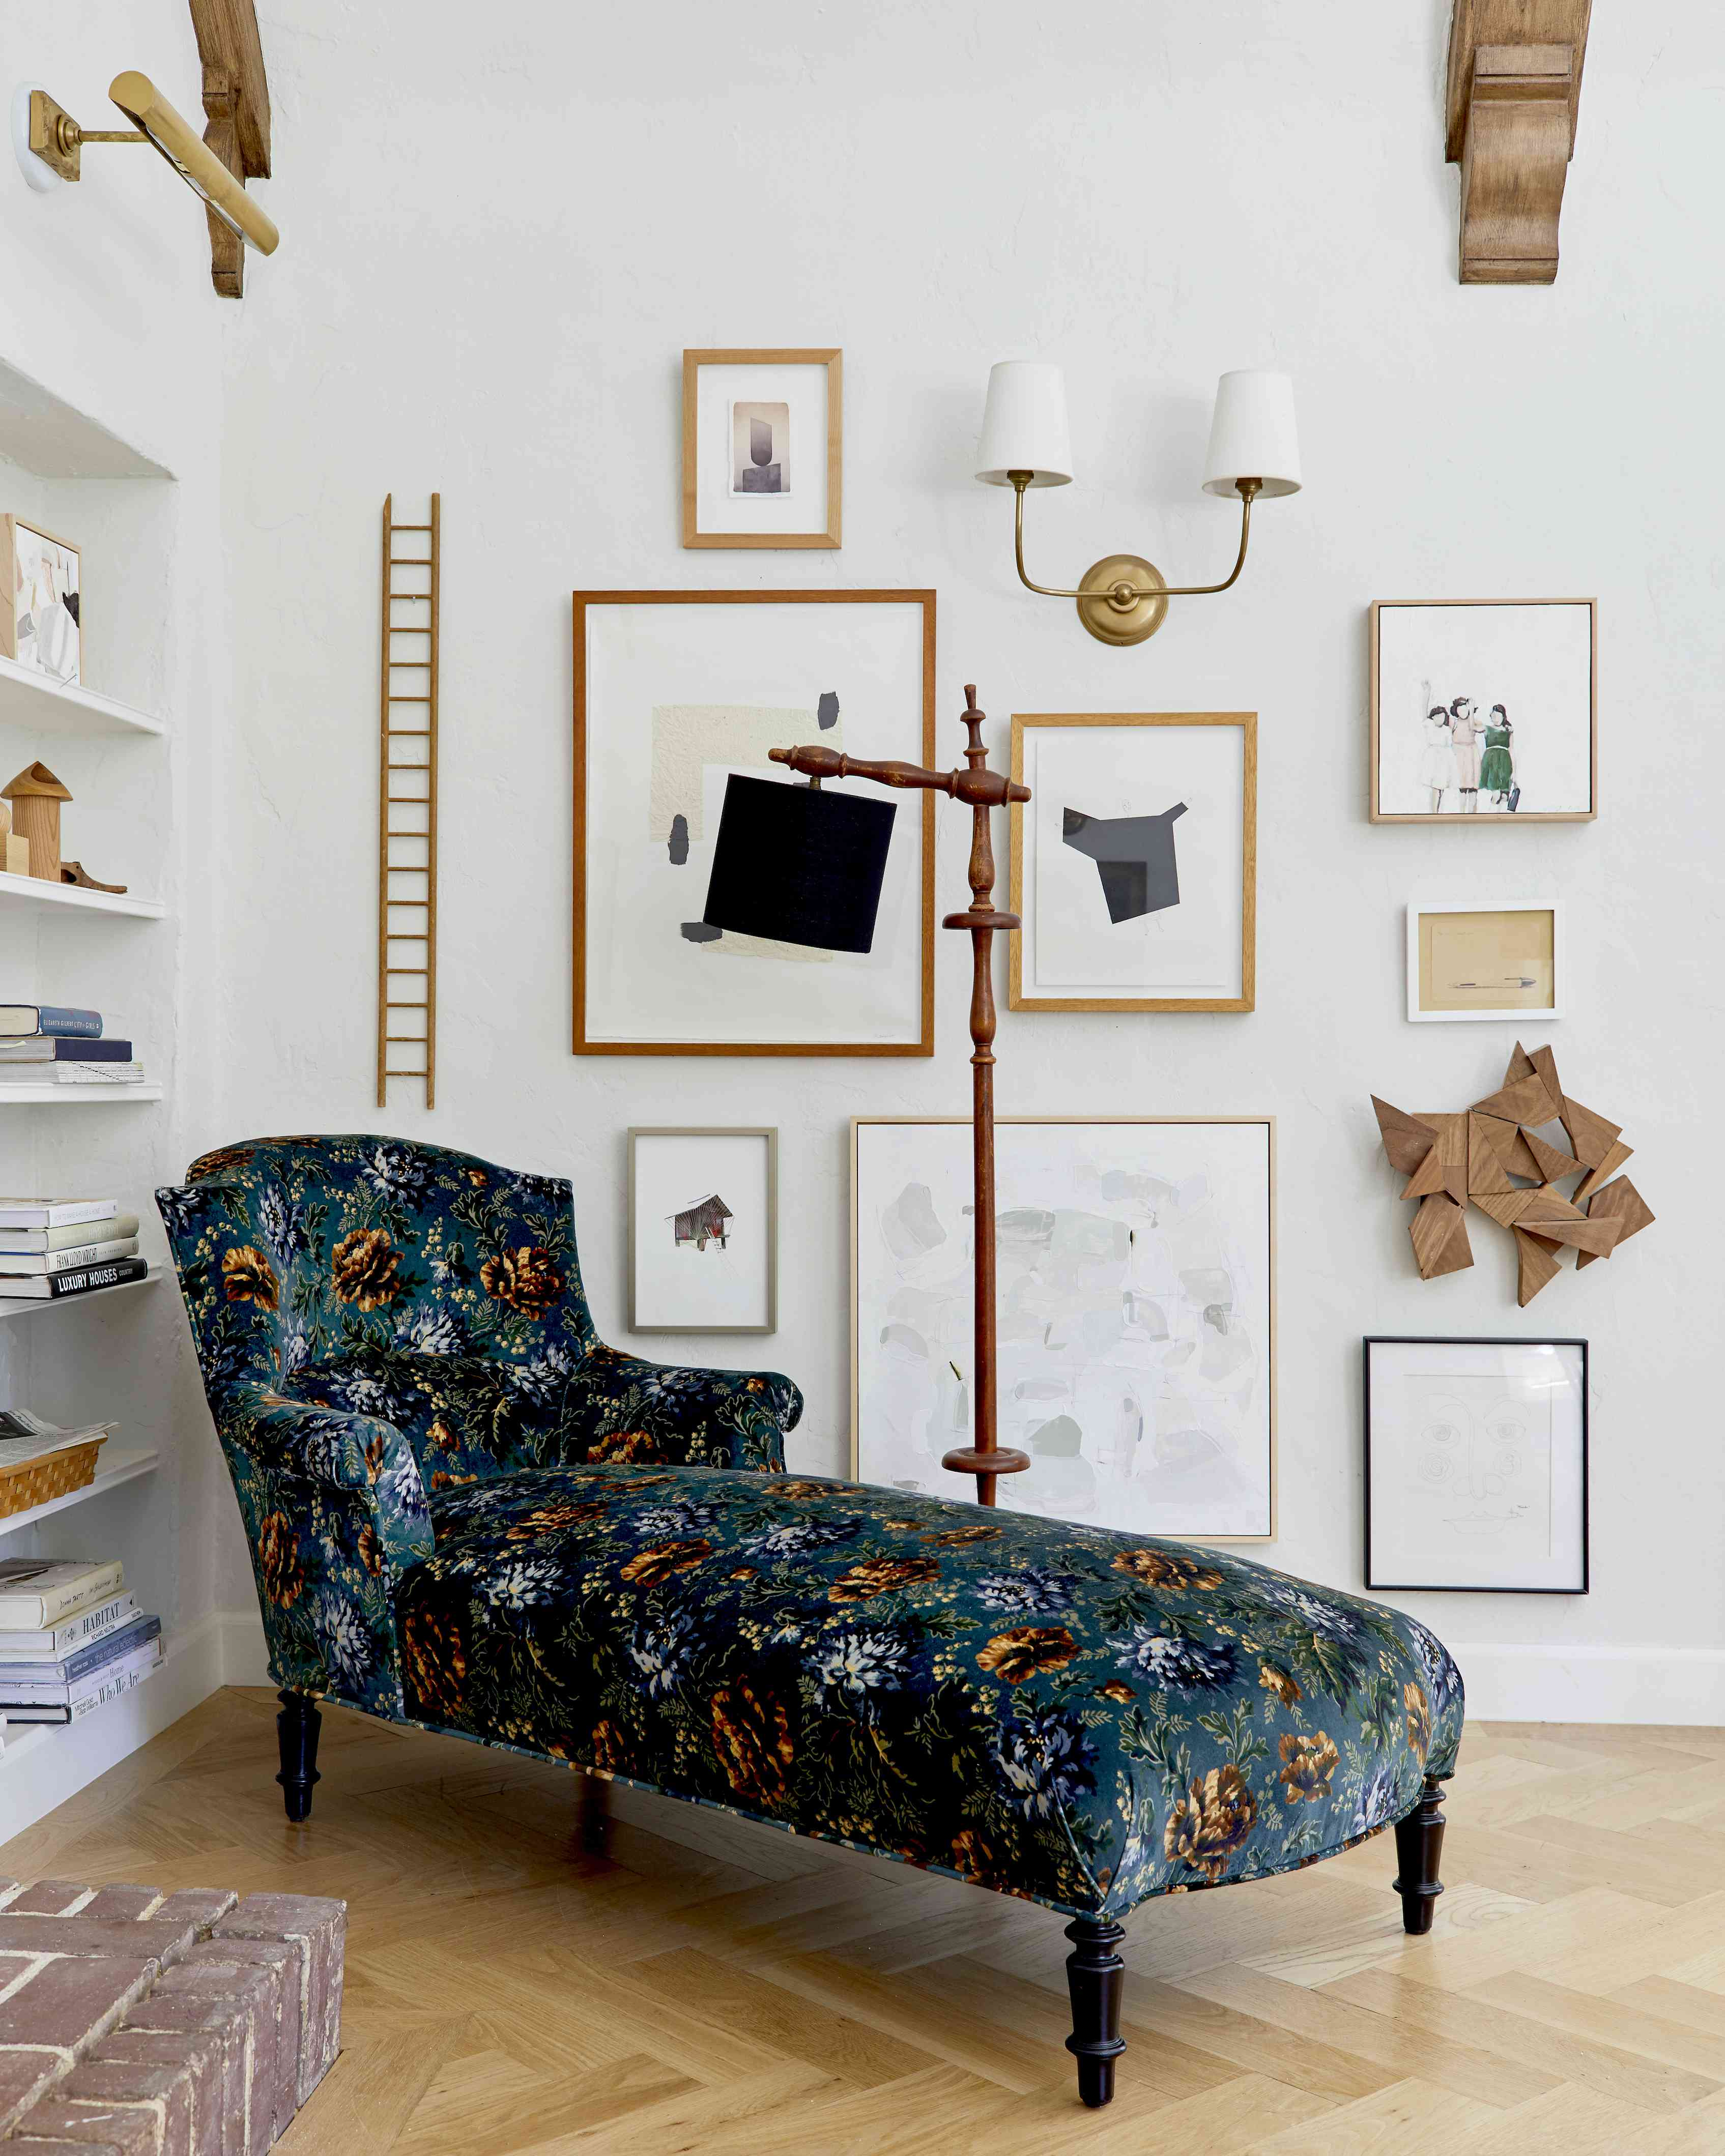 Living room corner gallery wall with textural elements